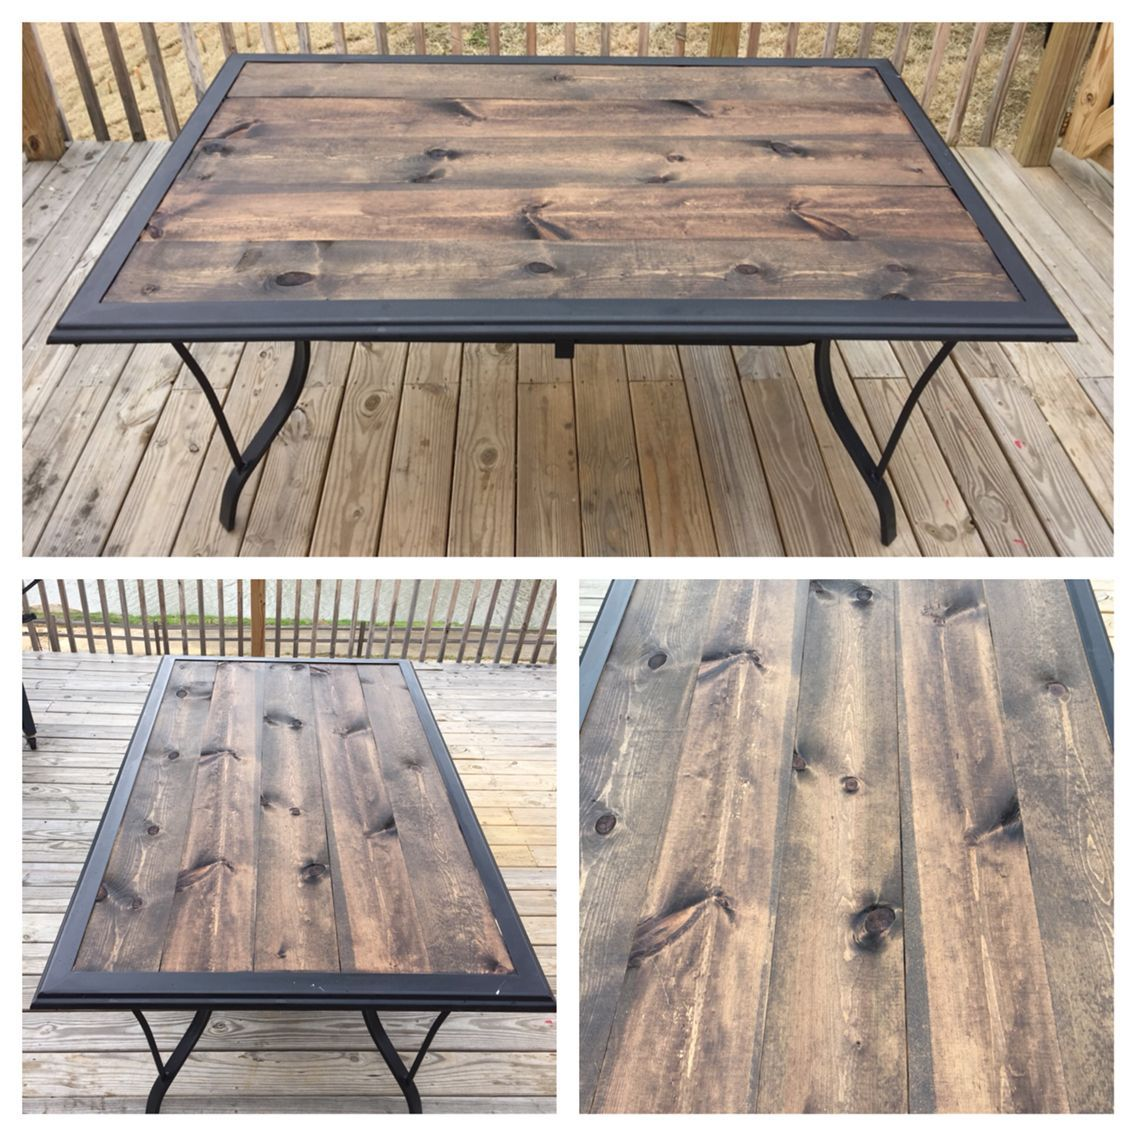 Rustic Pine Toung And Groove Interior Design: Repurposed Patio Table Turned Rustic After Glass Top